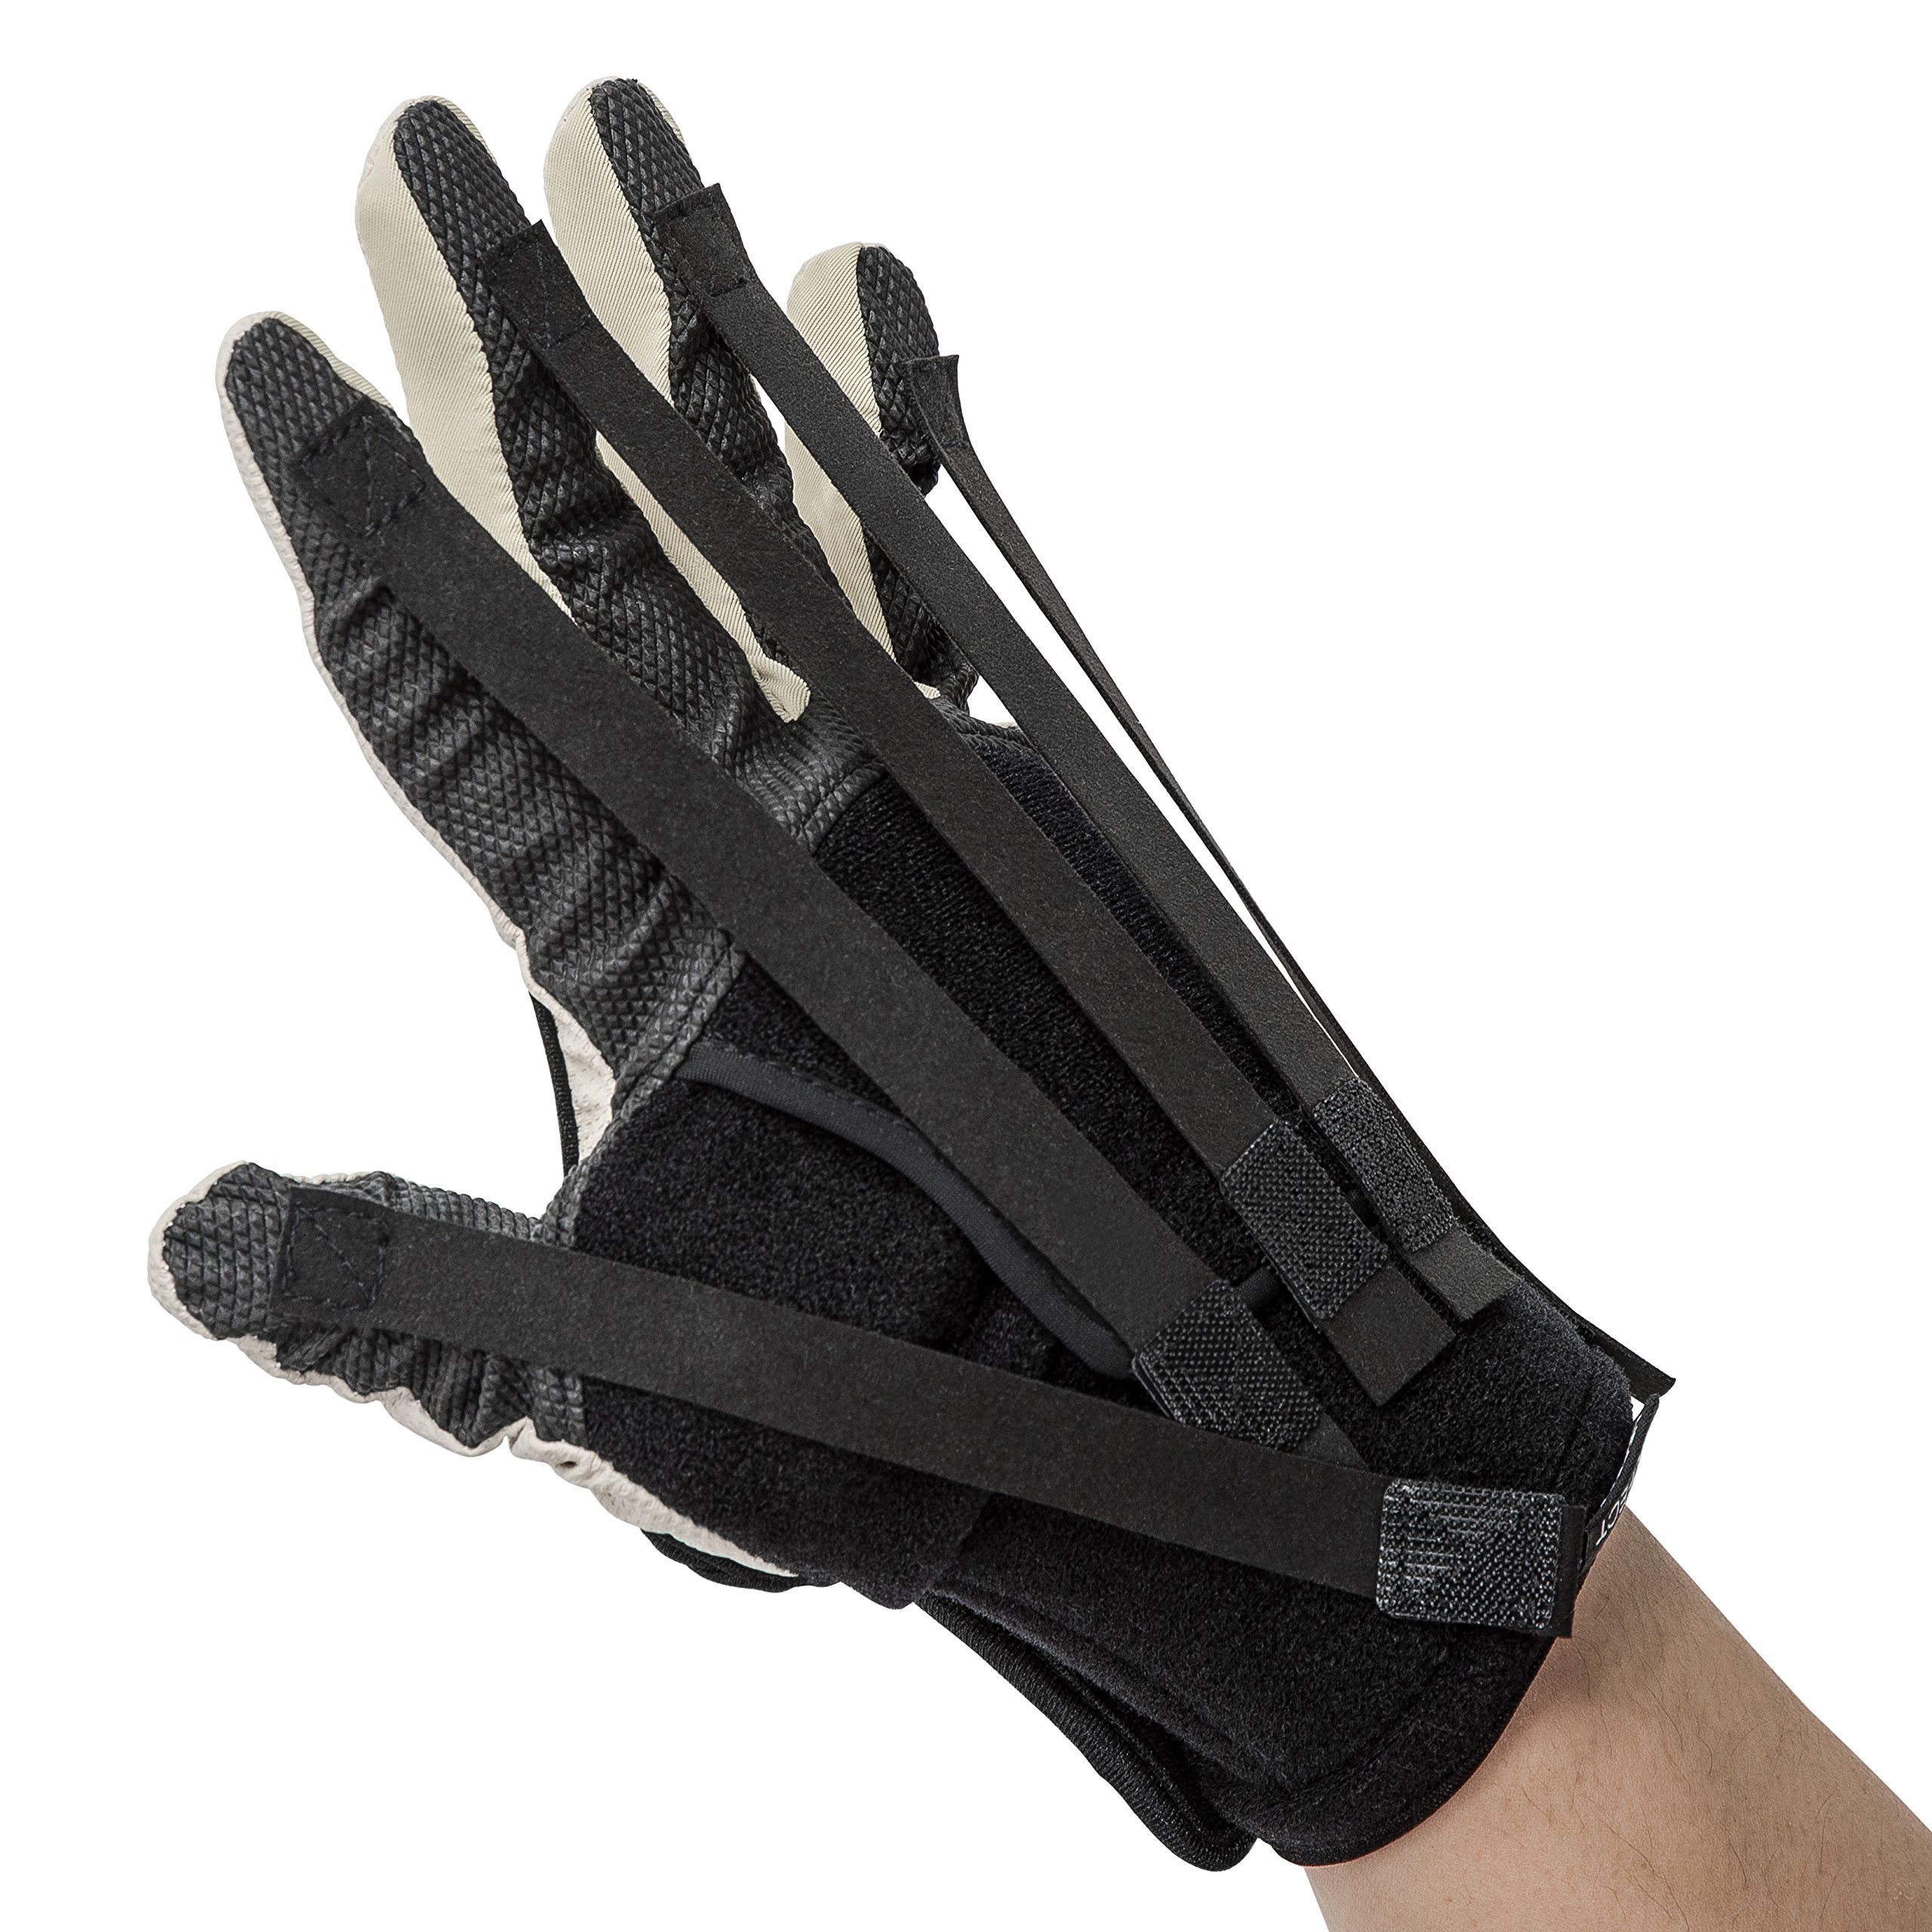 NEOFECT Extender - Minimizes Spasticity, Maintains Stretch & Functional Grasp, Prevents Stiffness for Stroke, TBI, Increased Muscle Tone, Hand Glove (Large, Left) by NEOFECT